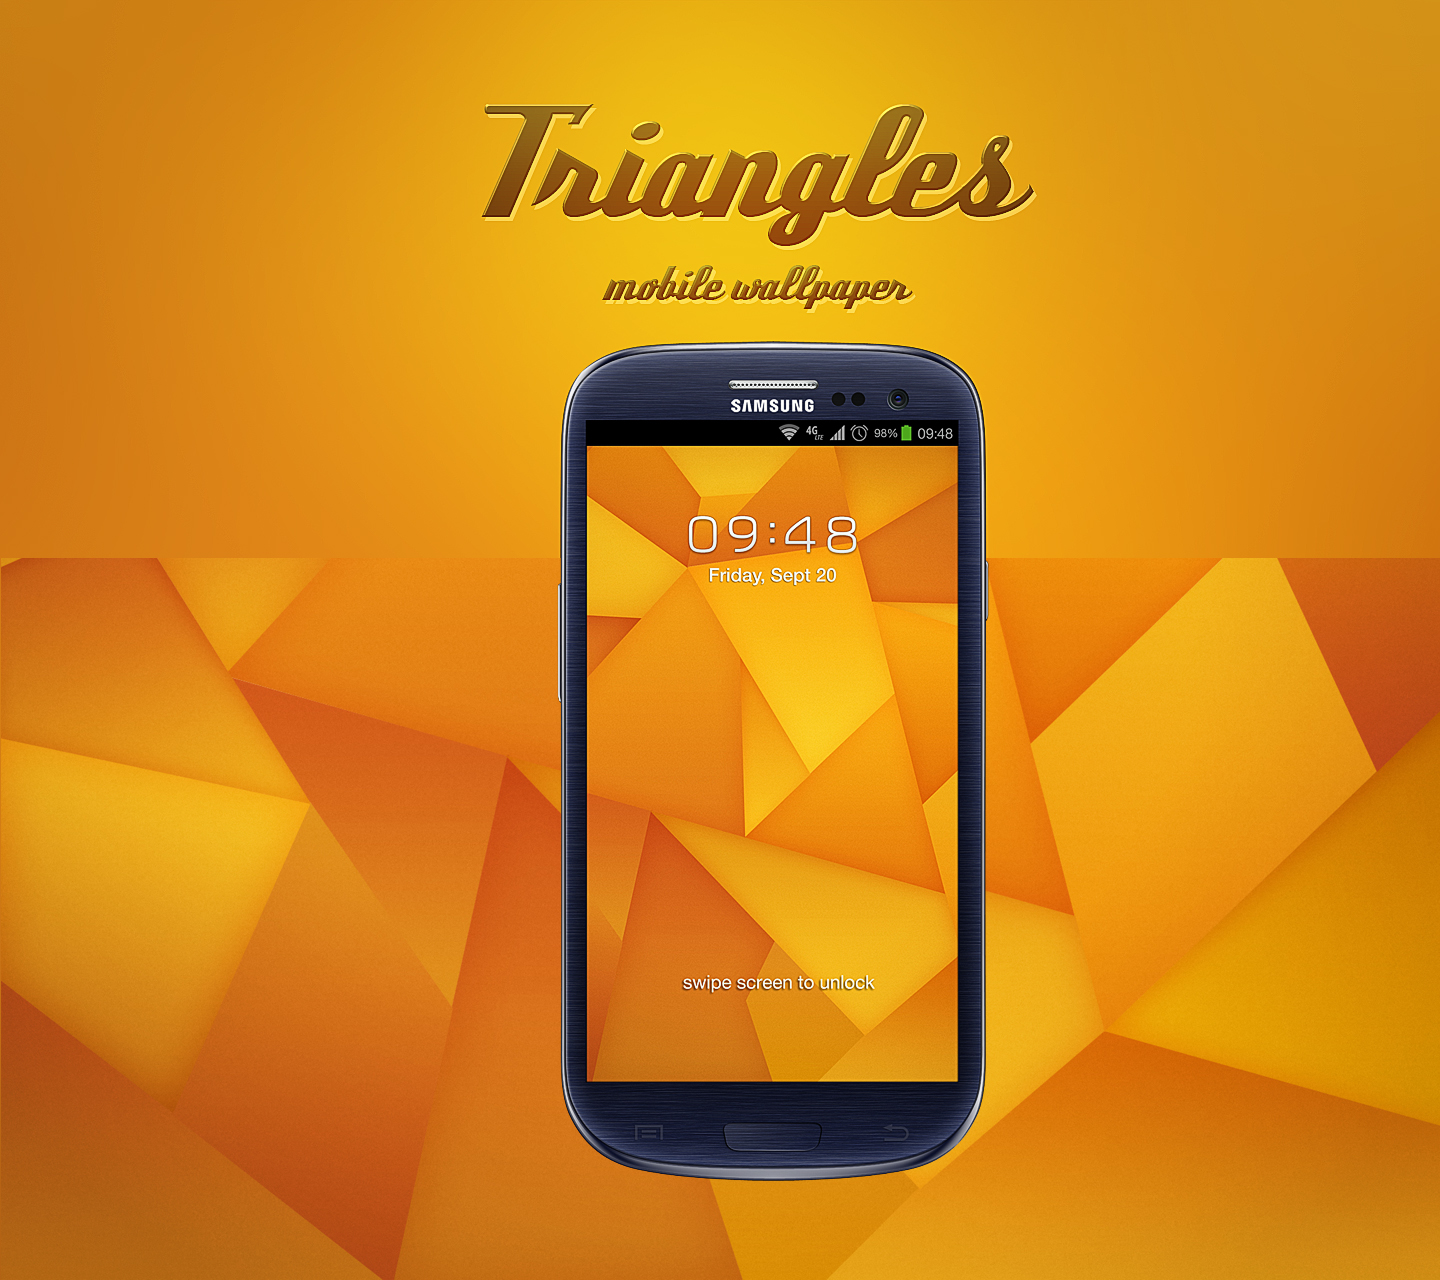 Triangles Wallpaper By Martz90 On Deviantart